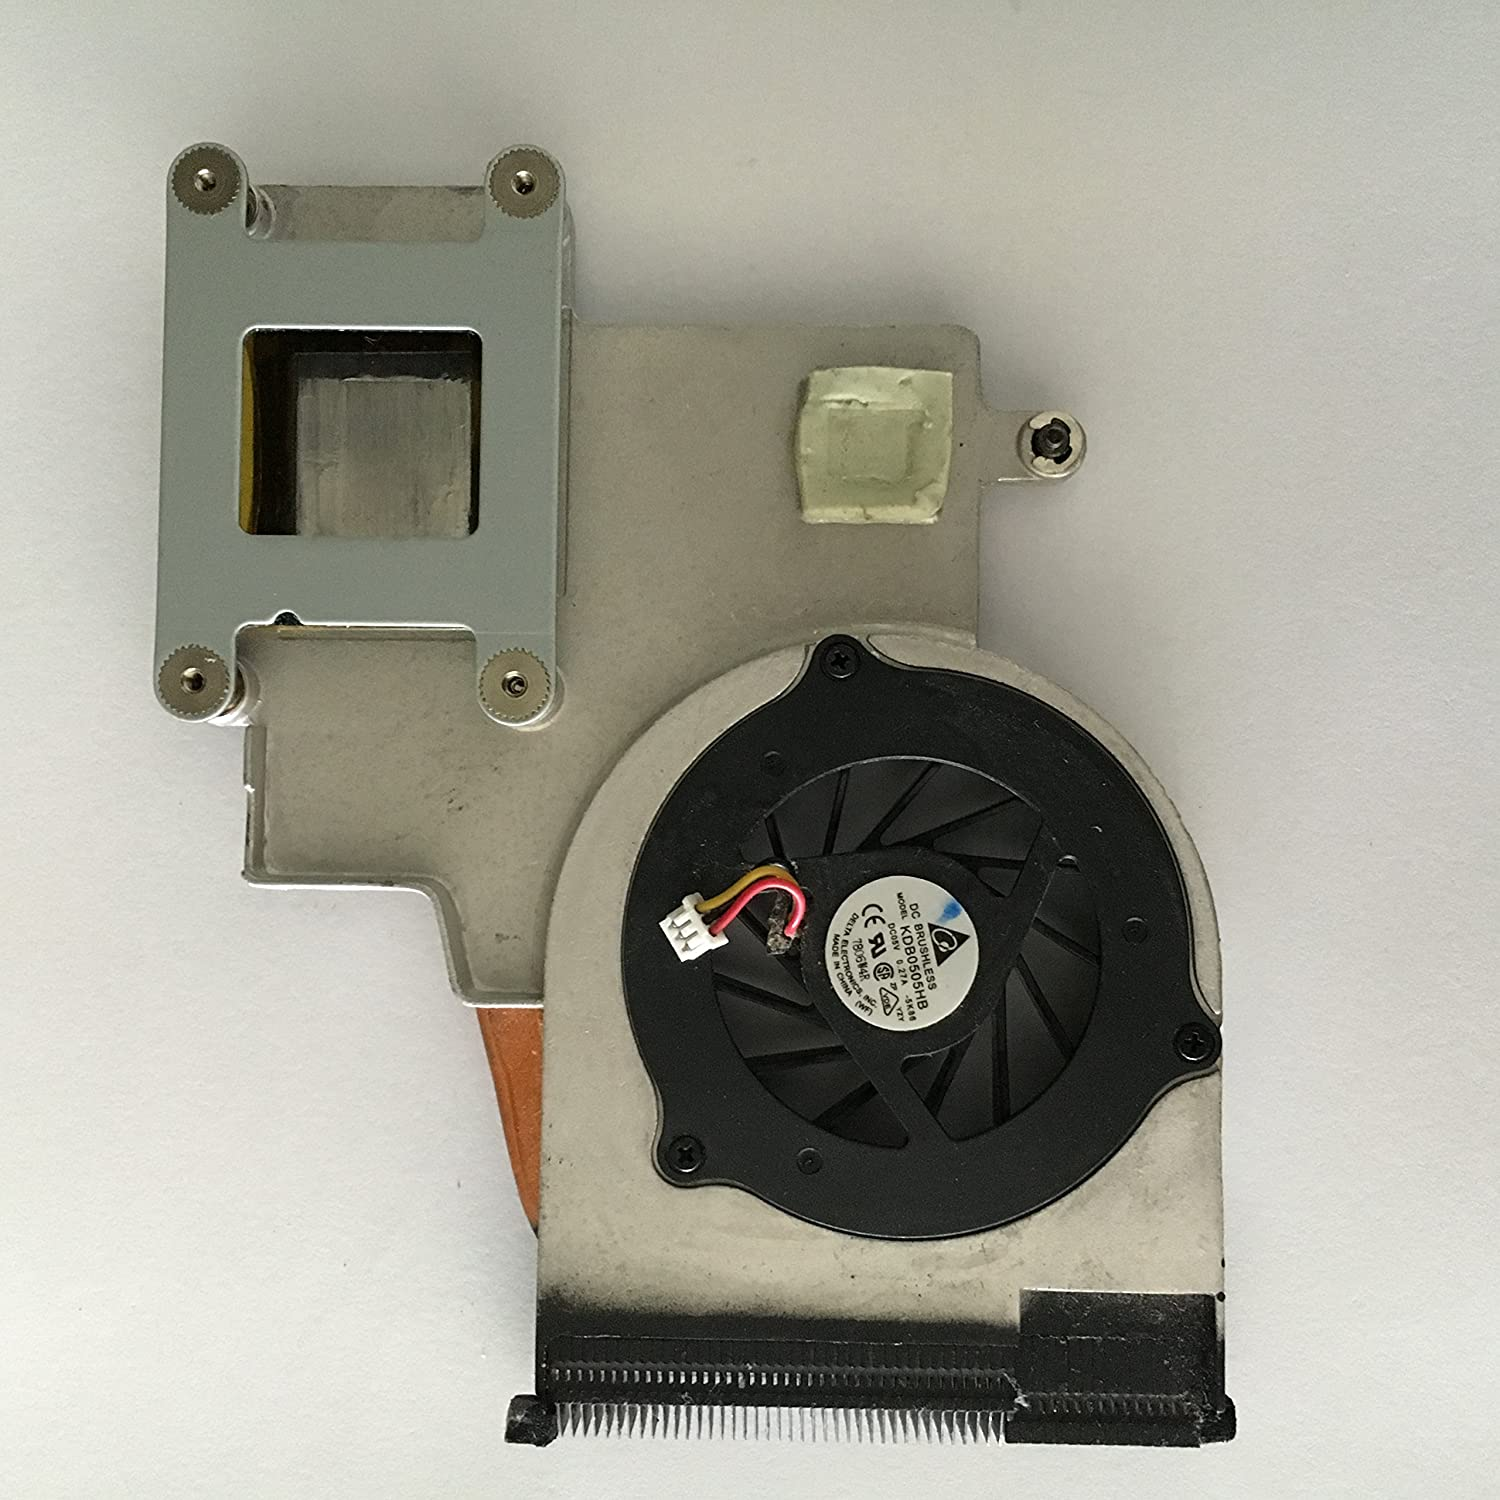 HP Pavilion dv2000 Fan and Heatsink KDB0505HB - 431851-001